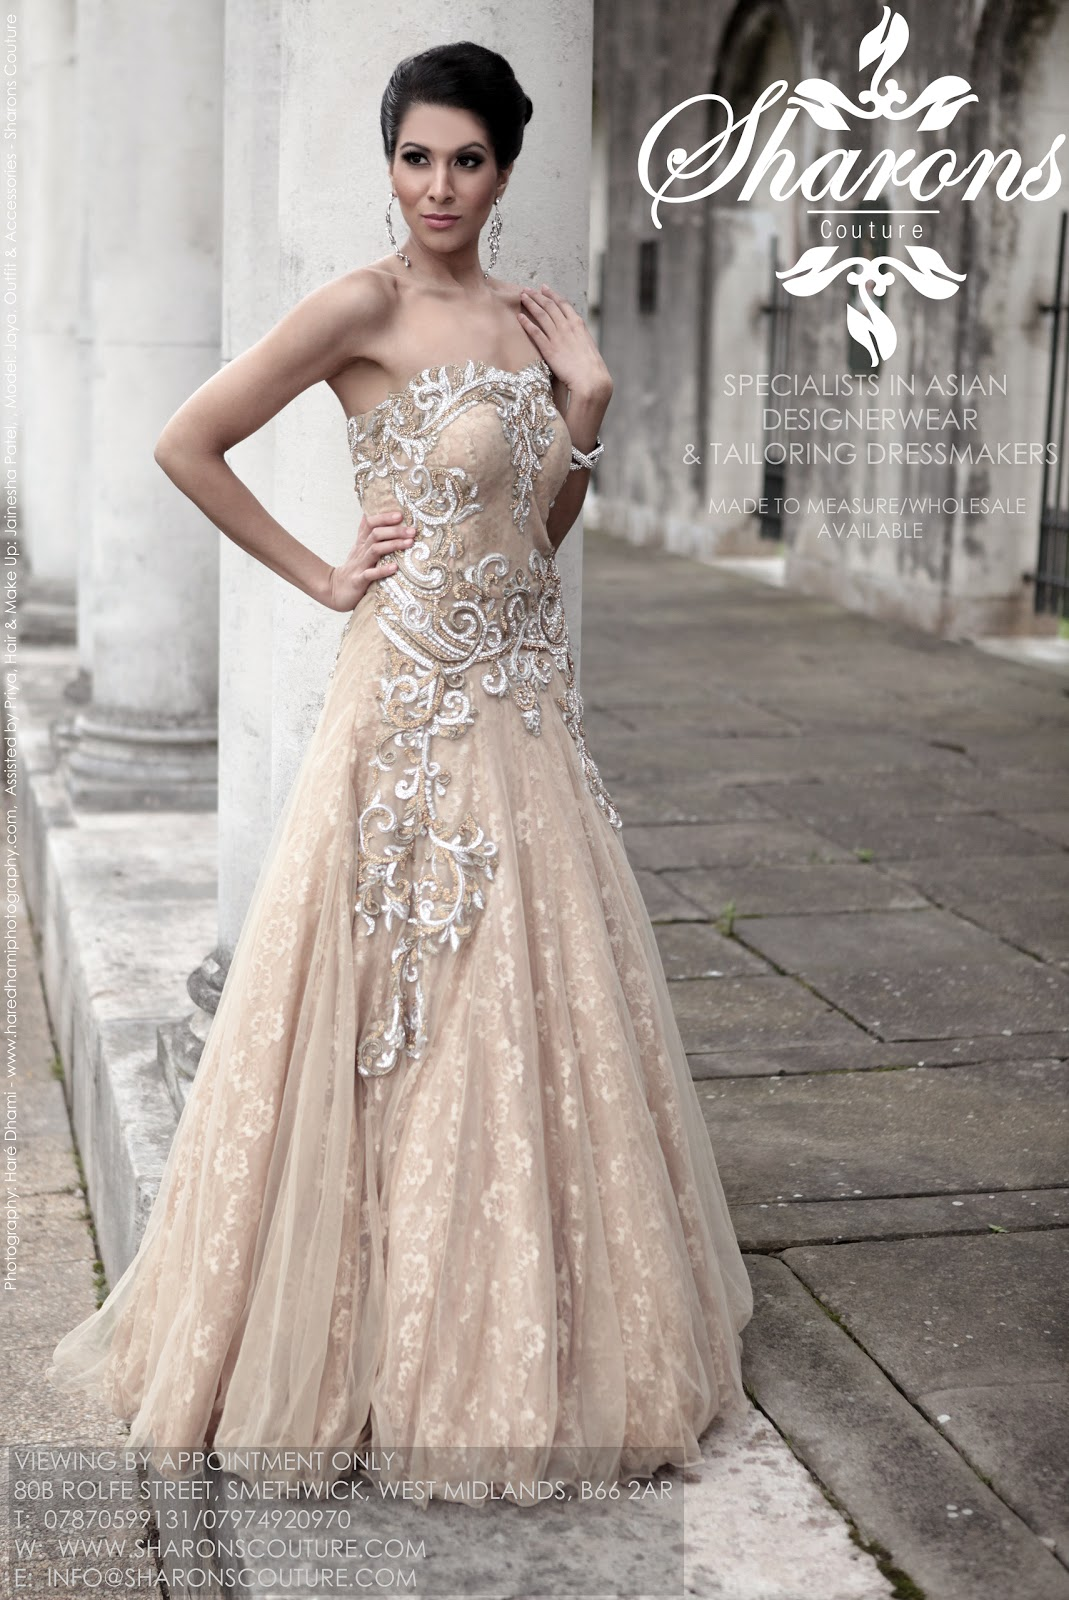 Sharons Couture: New Bridal Gowns & Bride\'s Maid\'s Gown